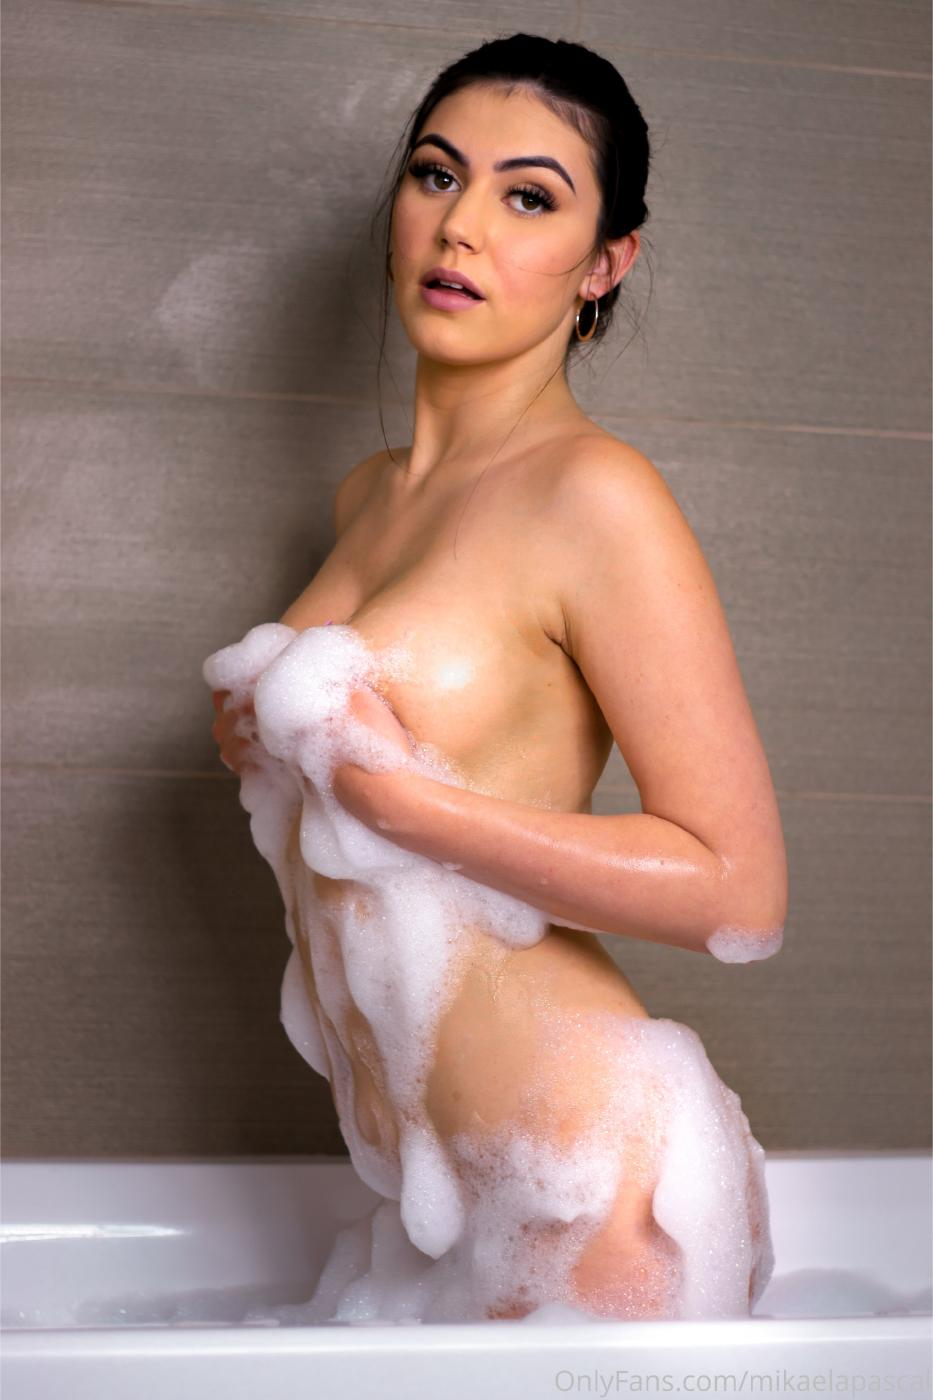 Mikaela Pascal Nude In Bath Onlyfans Set Leaked 0008